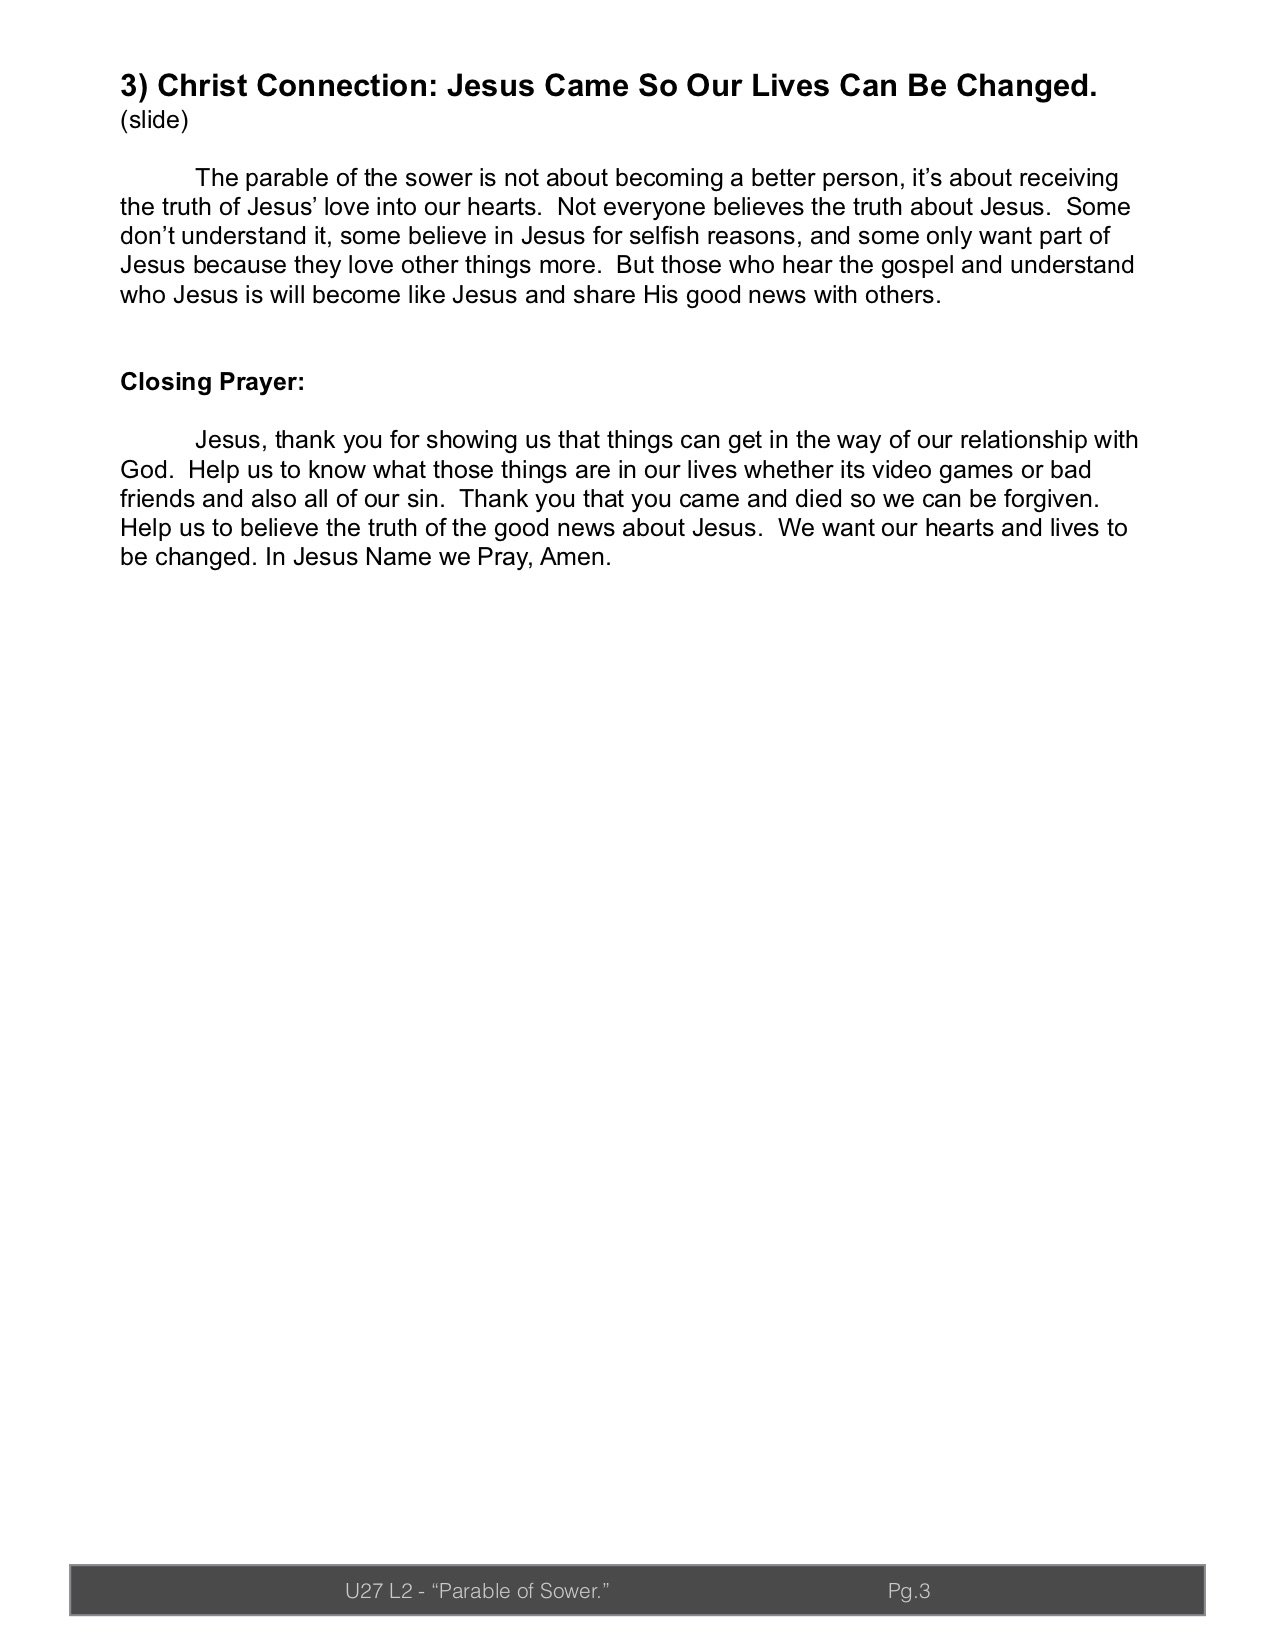 U27 L2 Parable of the Sower lead pg 3